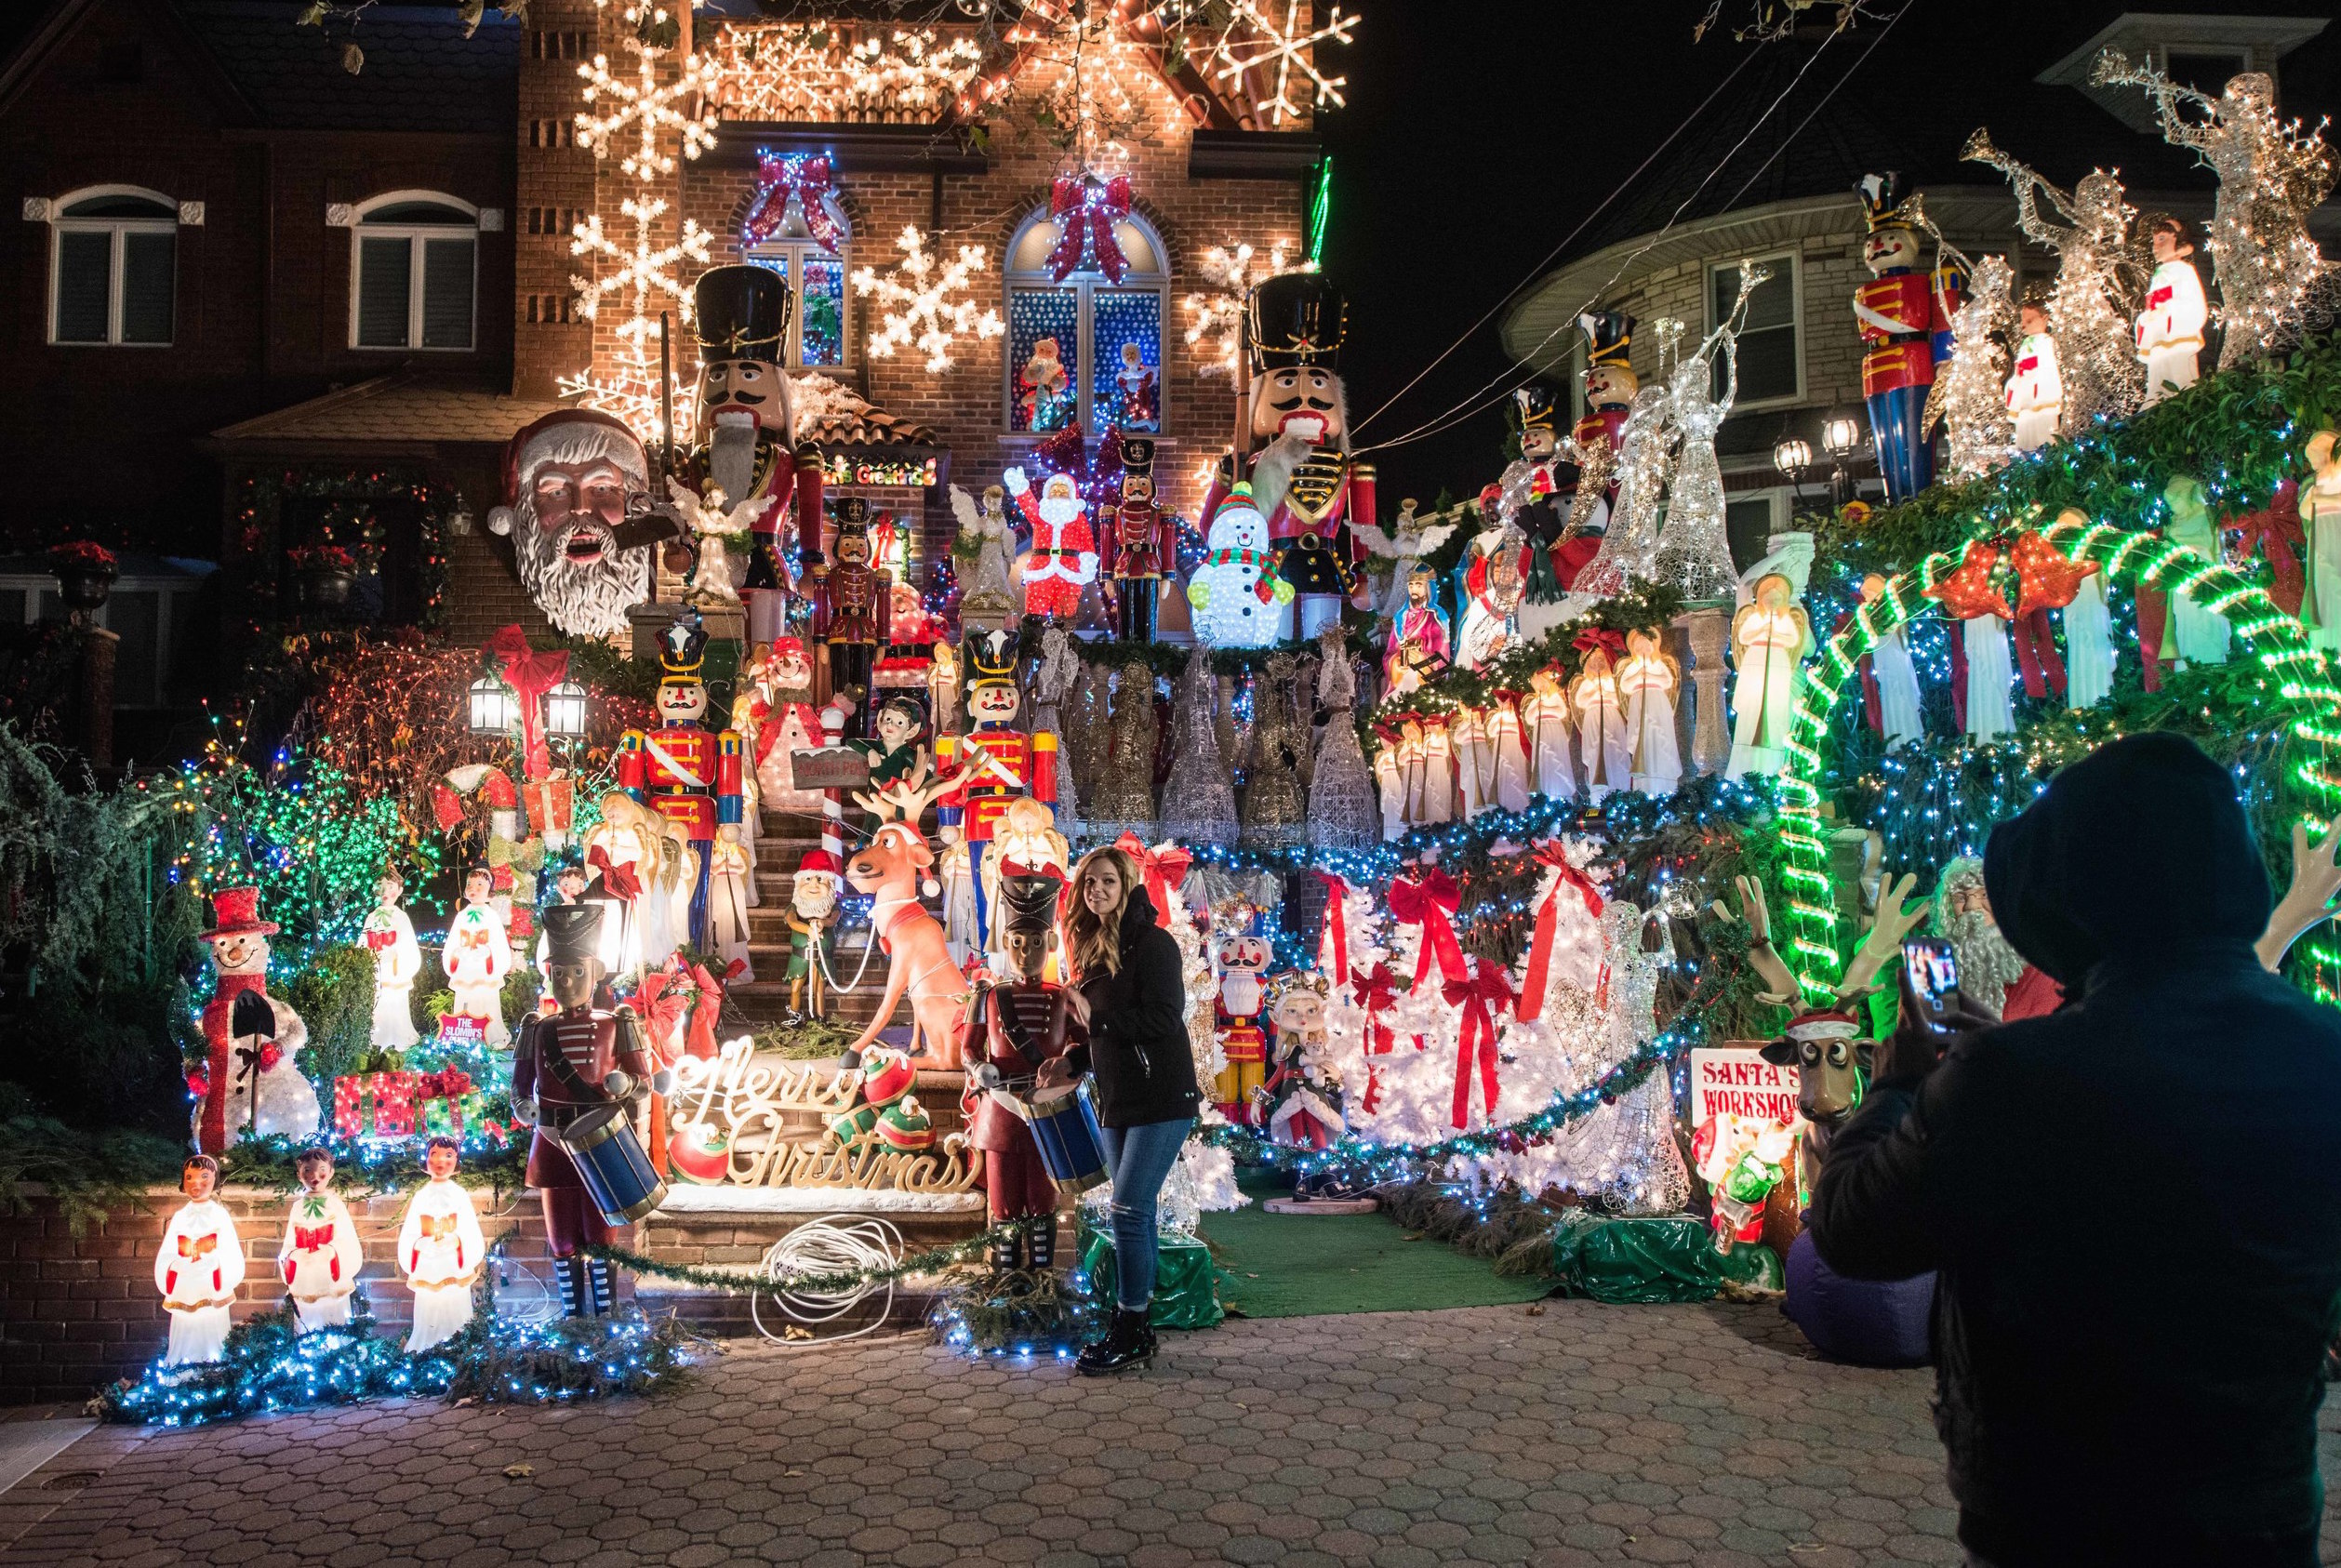 Christmas Lights In New York 2019 Christmas in New York 2019 Guide Including Holiday Events